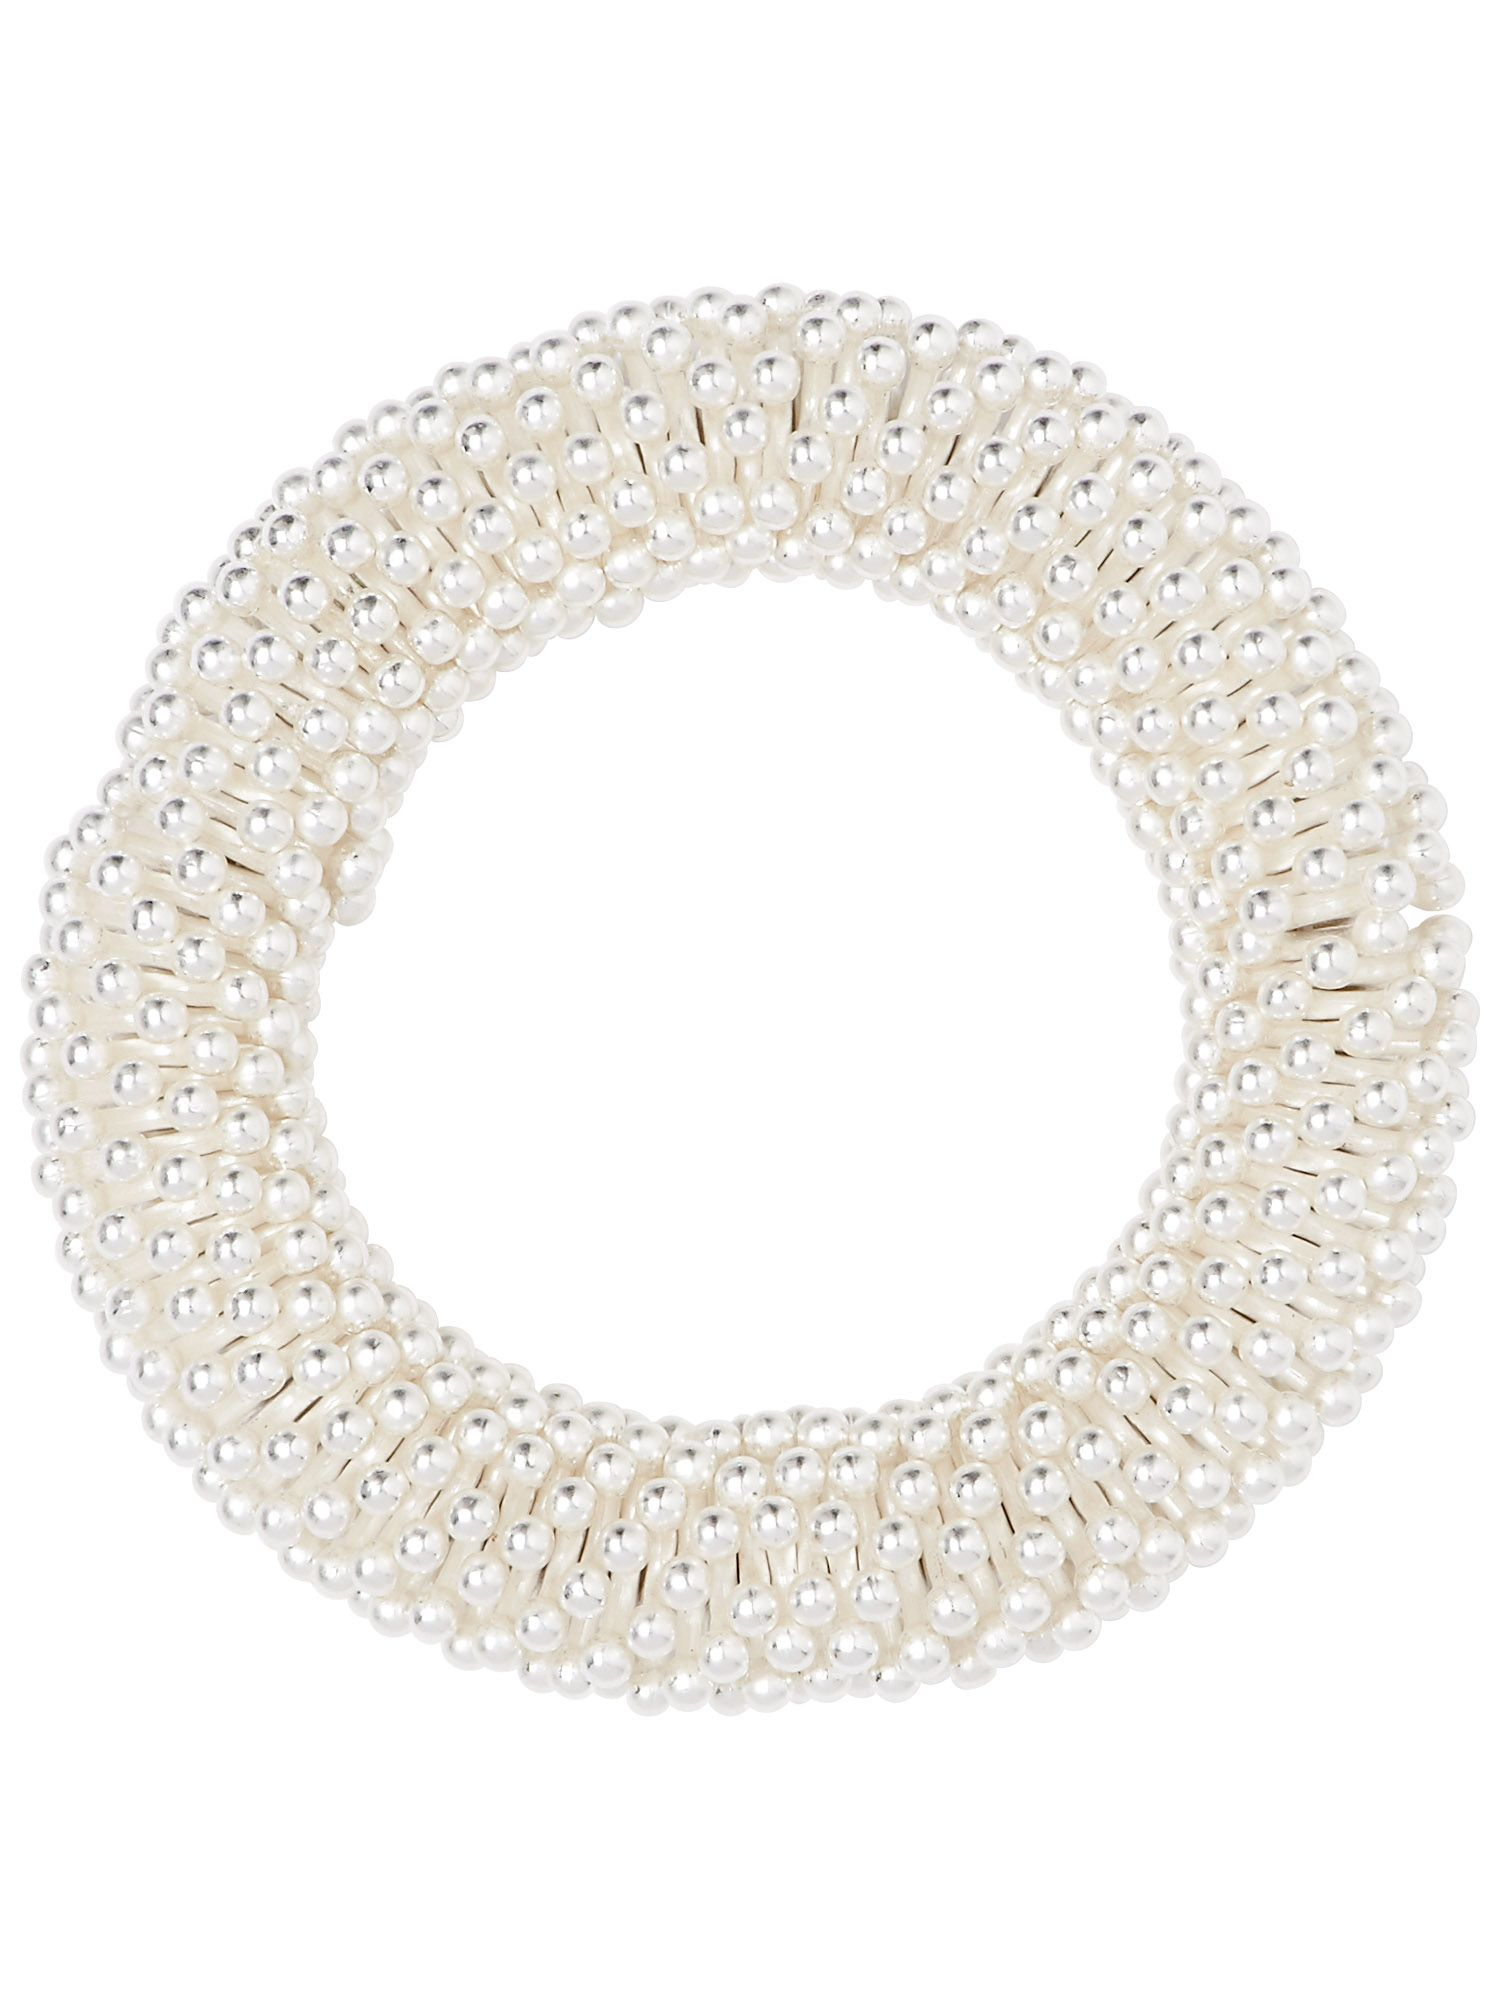 Erin stretch bracelet